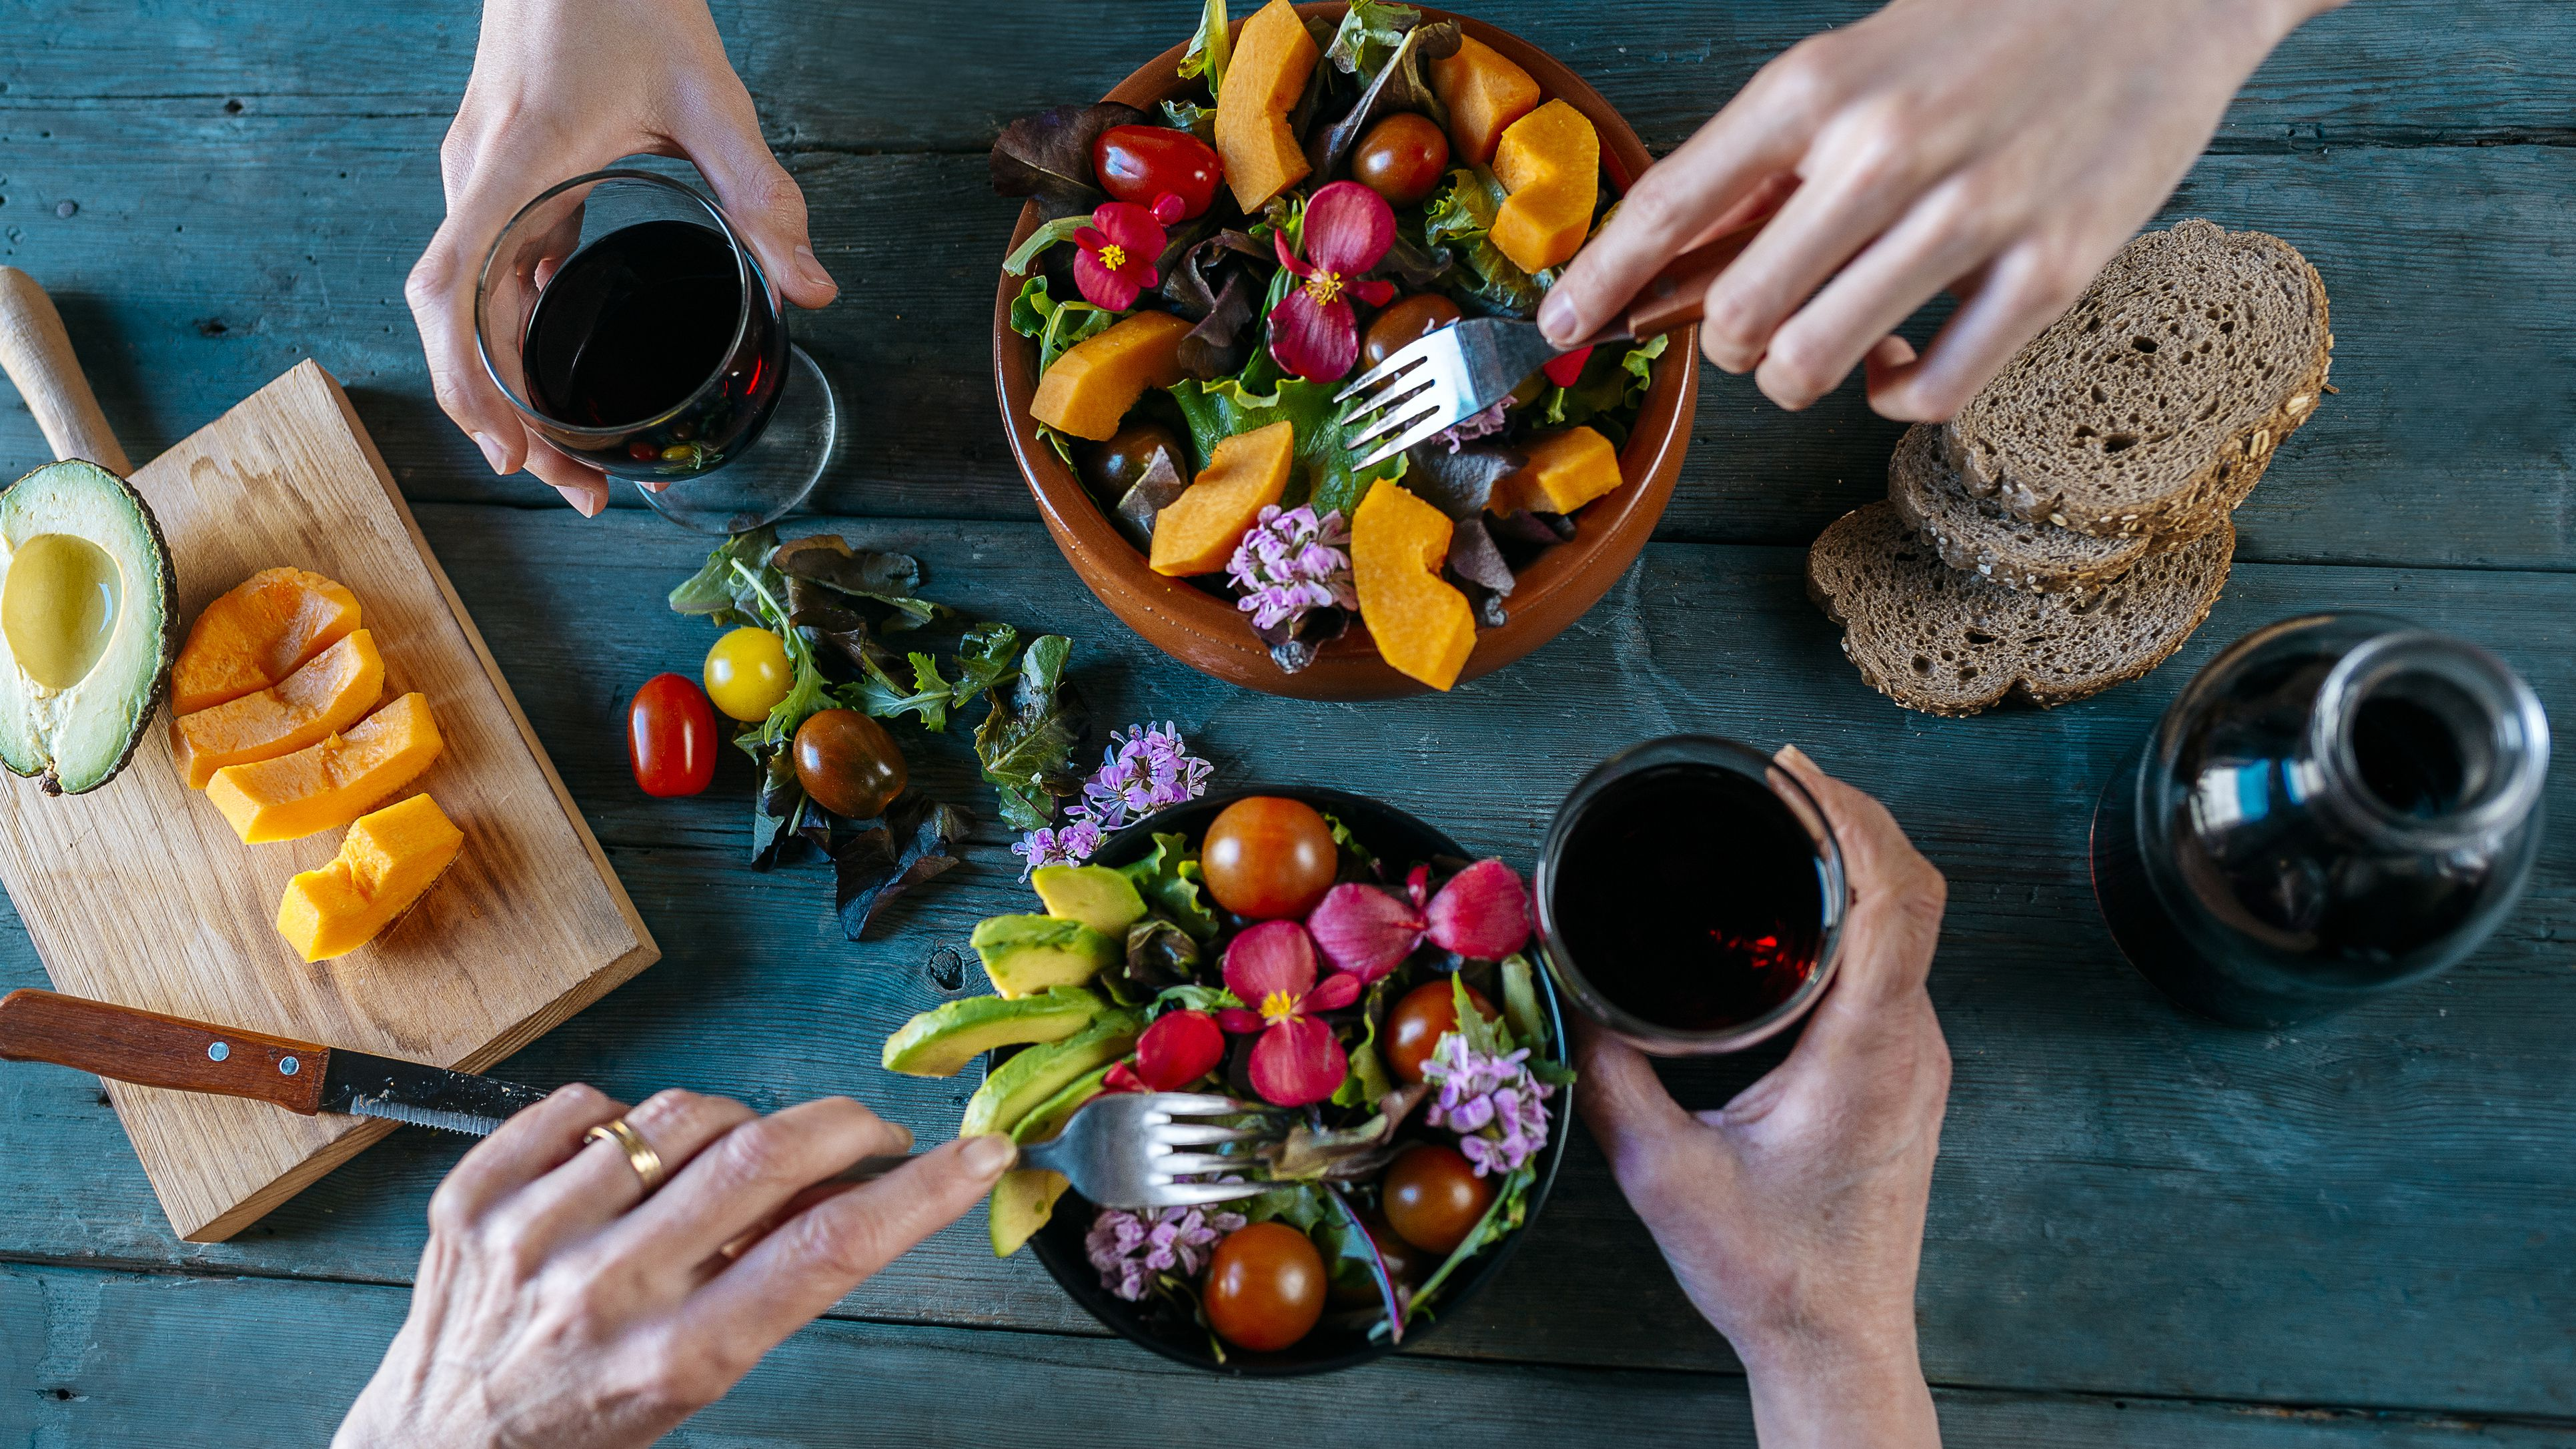 How to Pair Wine With Vegetable Dishes